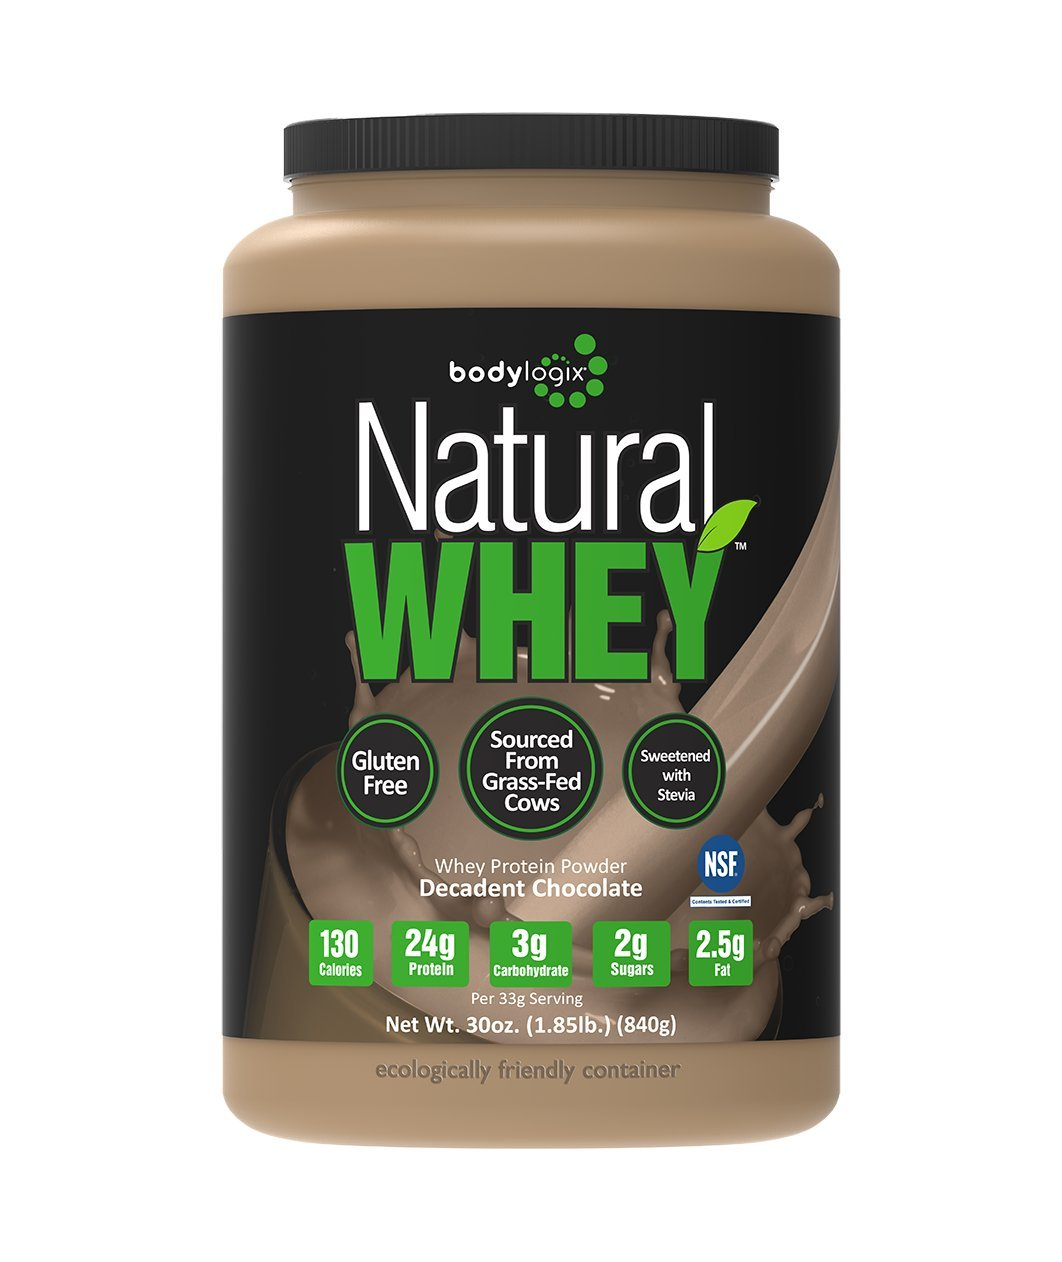 Bodylogix Natural Whey Protein Powder